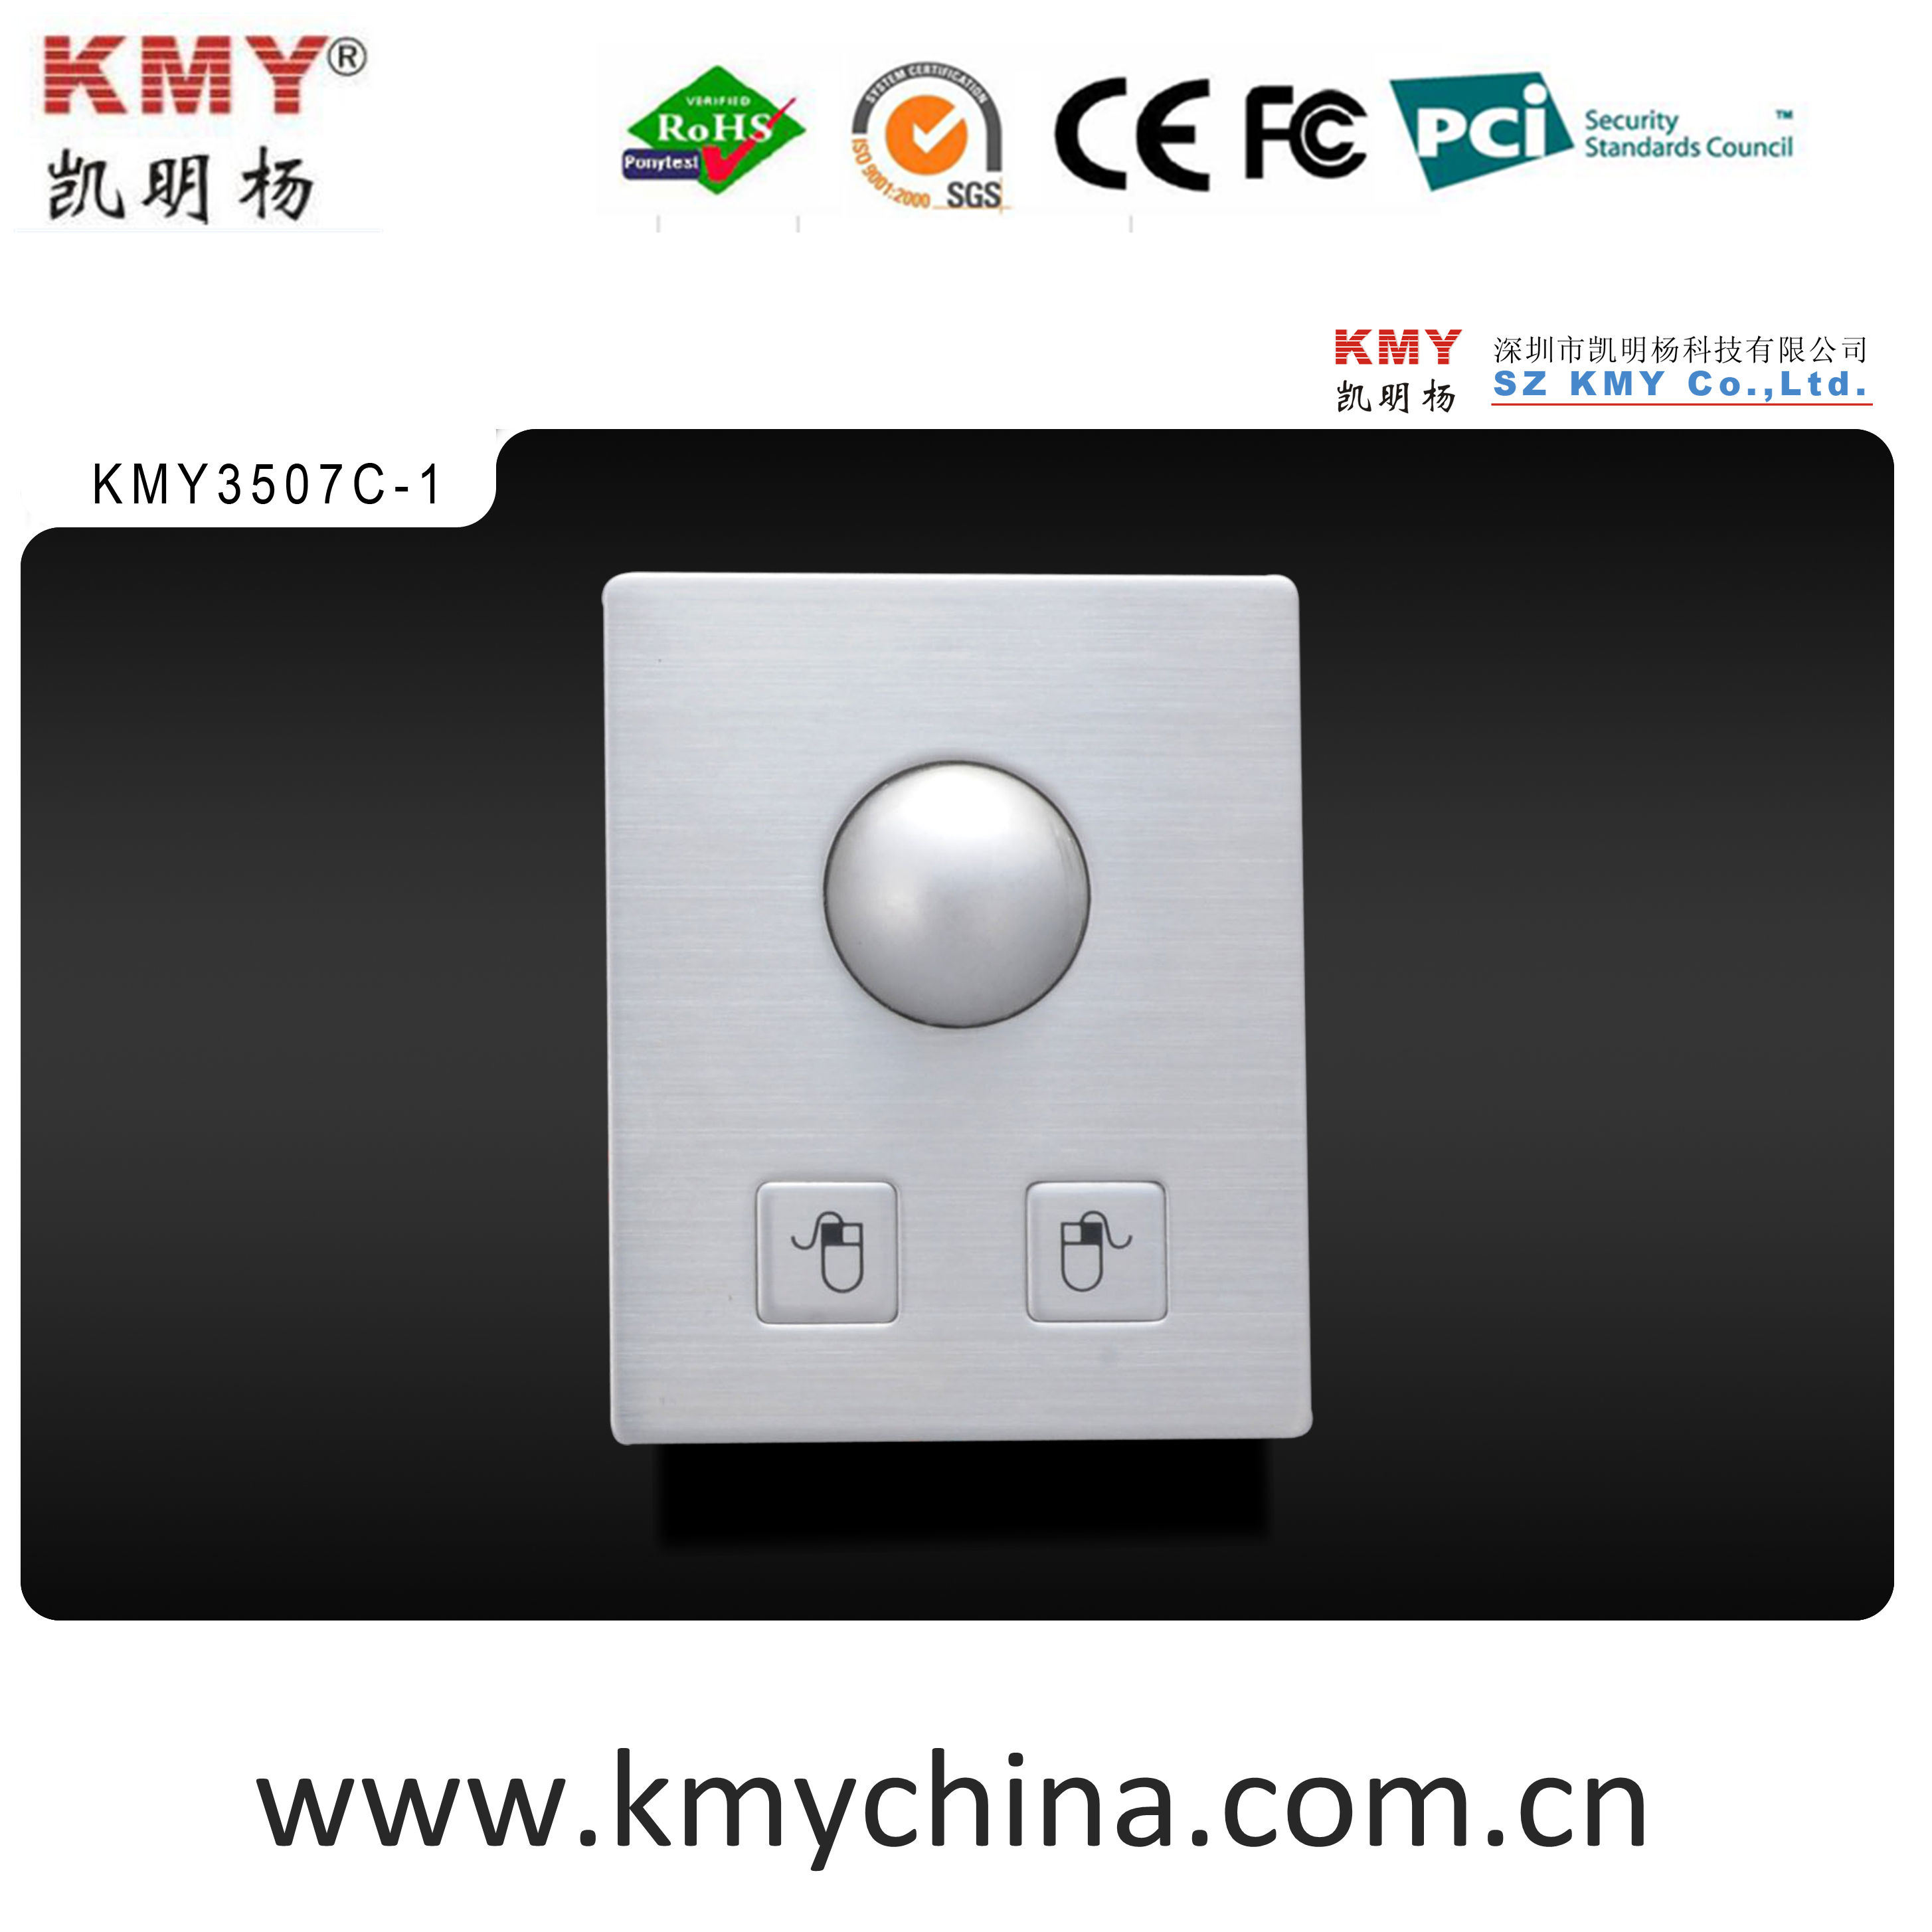 IP65 Industrial Metal Trackball 25mm Diameter (KMY3507C-1)